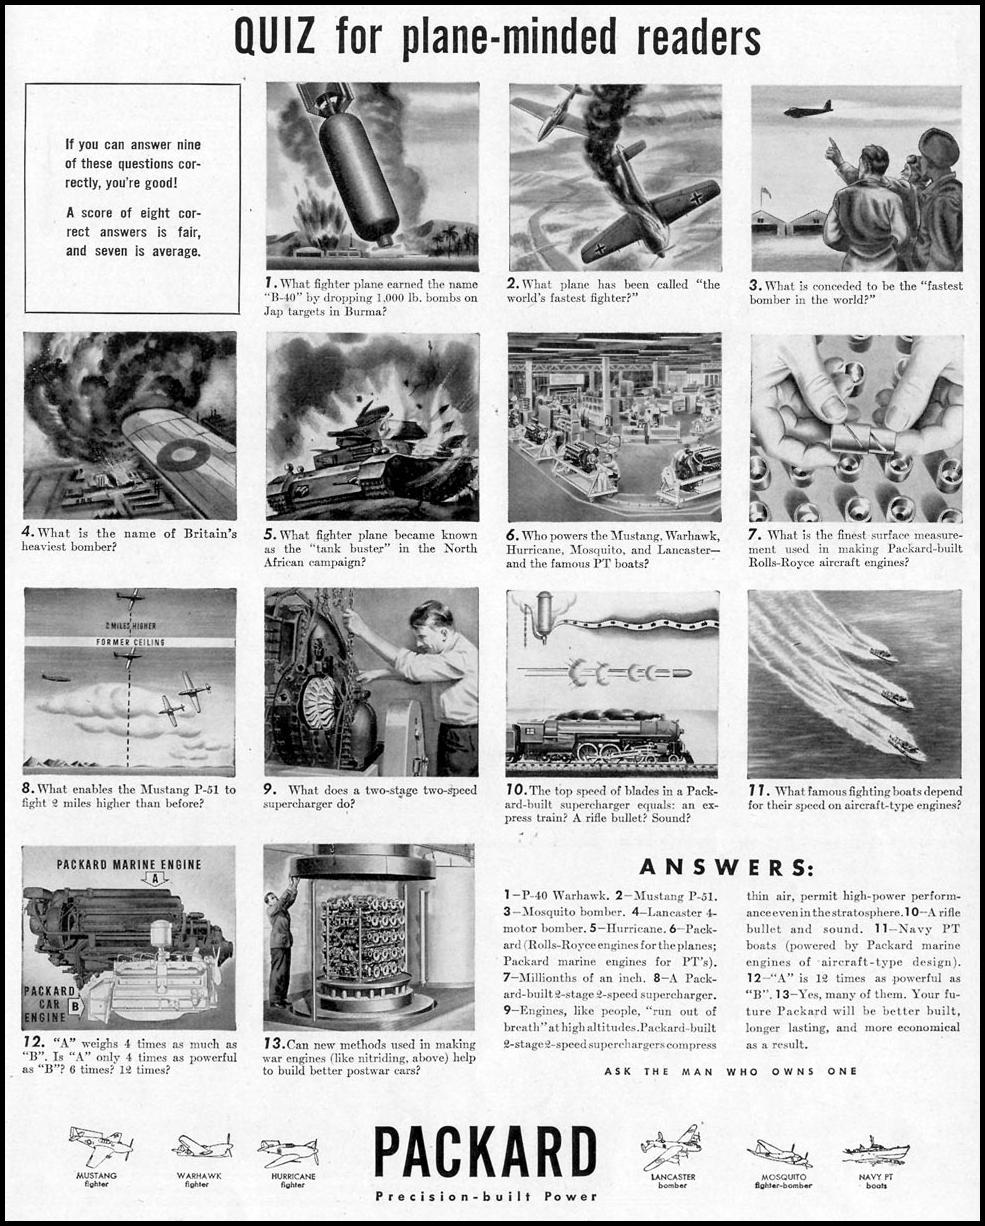 PACKARD WAR PRODUCTION